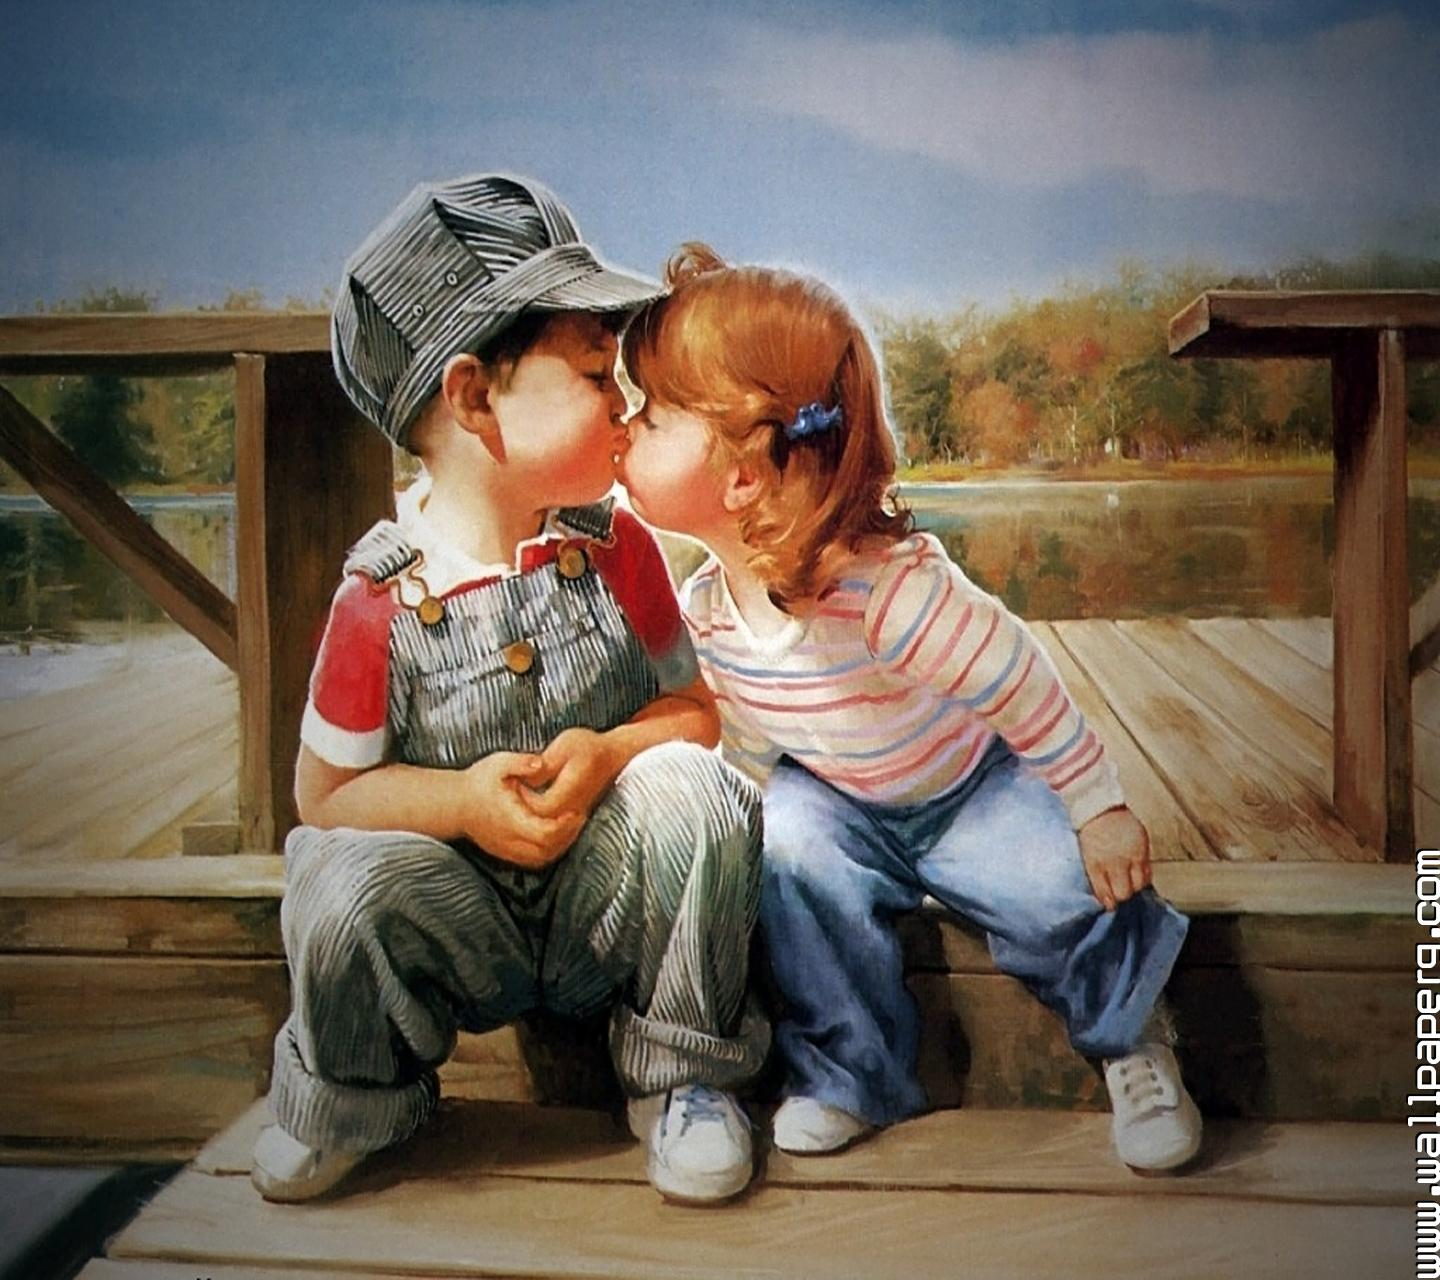 Kissing Wallpaper: Cute Baby Couple Kissing Photos